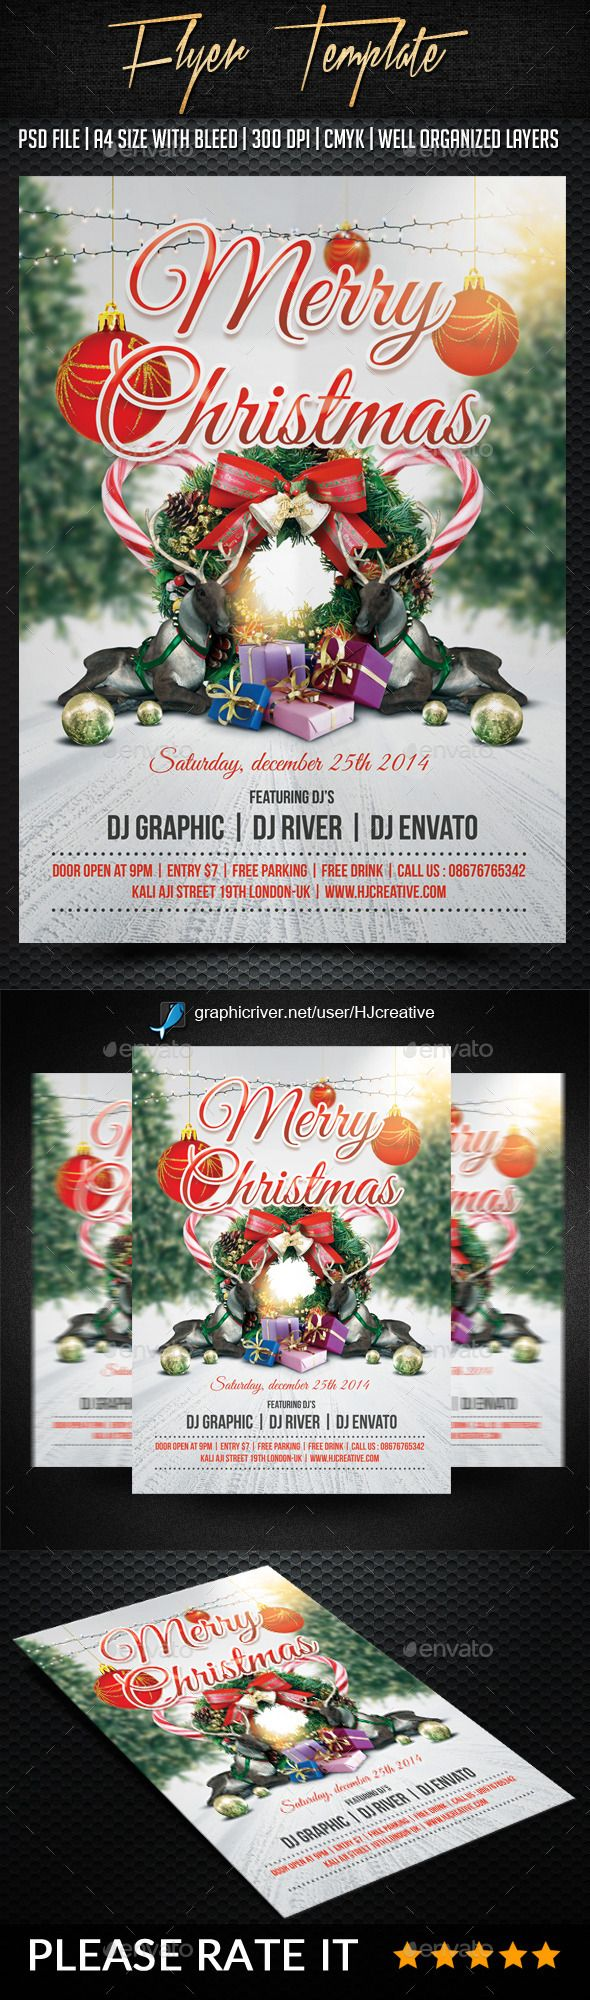 Free christmas poster design templates - Merry Christmas Poster Flyer Template Psd Design Xmas Download Http